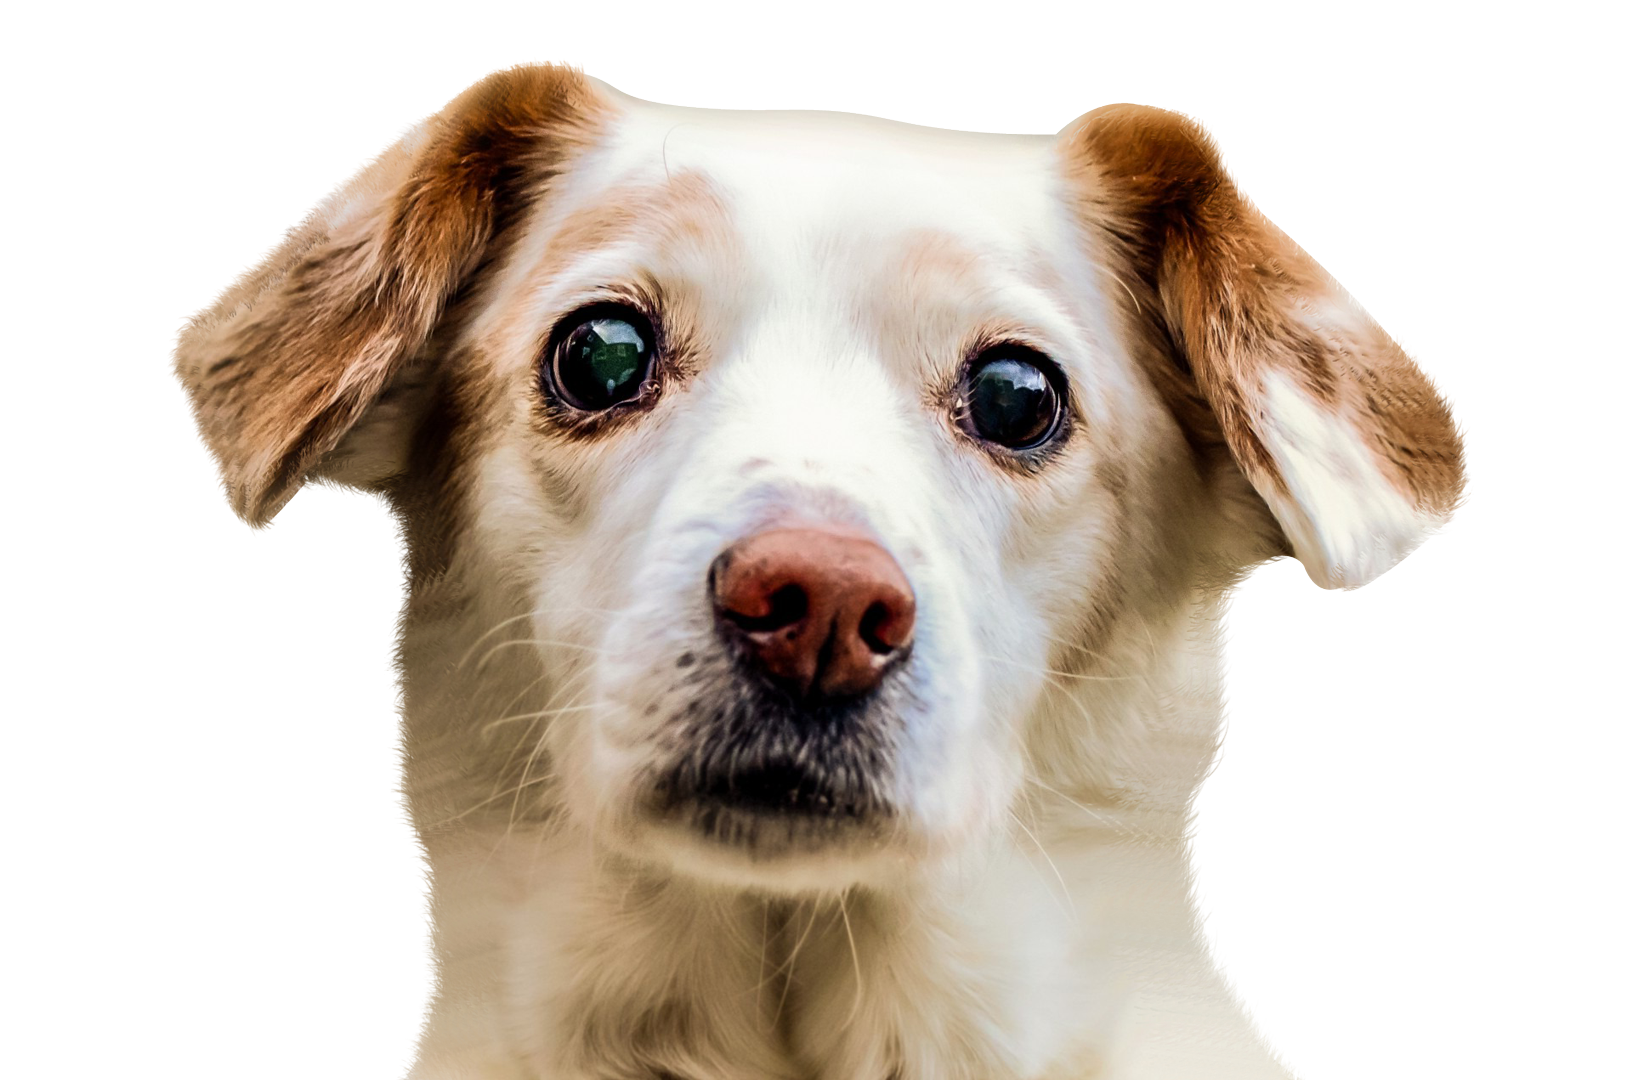 Dog face png. Image